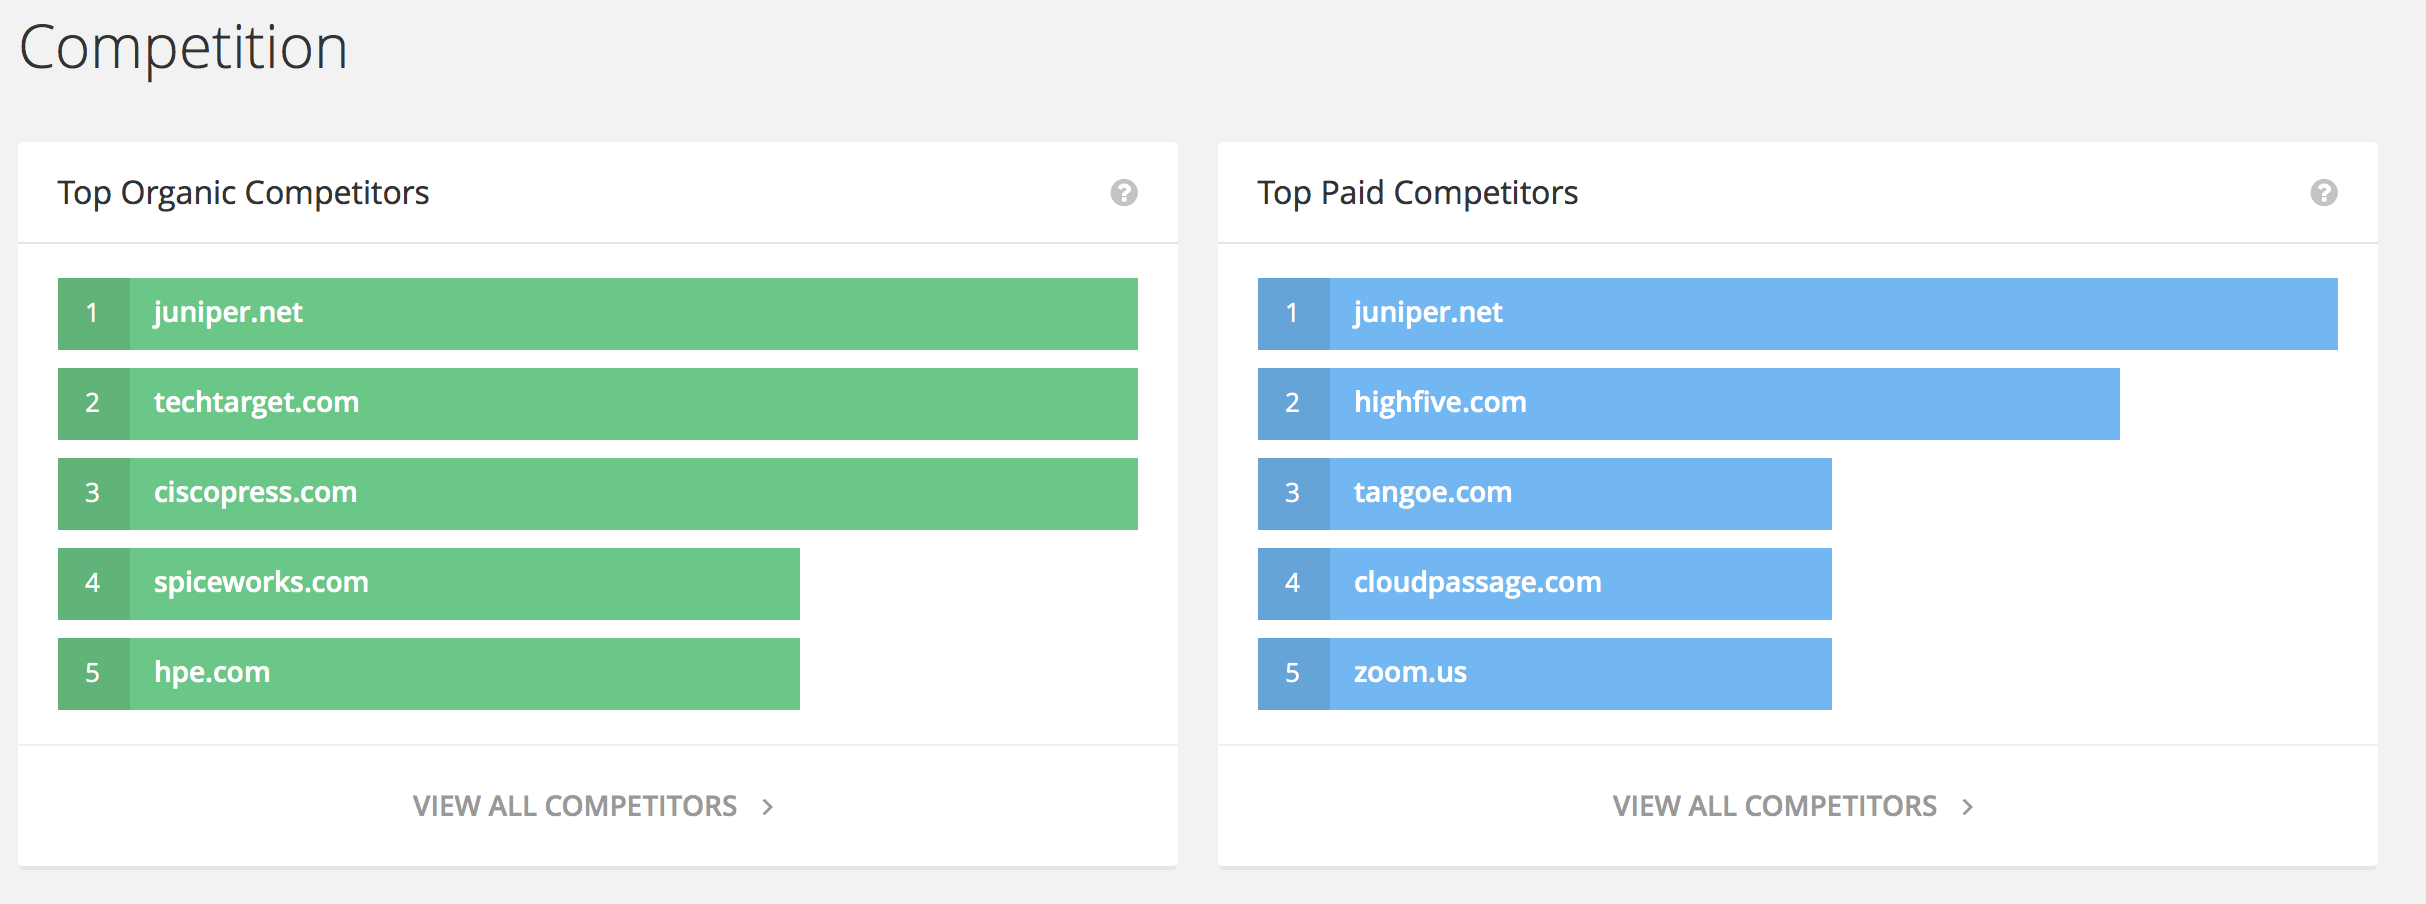 6 of the Best Tools for Digital Marketing Competitive Analysis - Spyfu - Competition